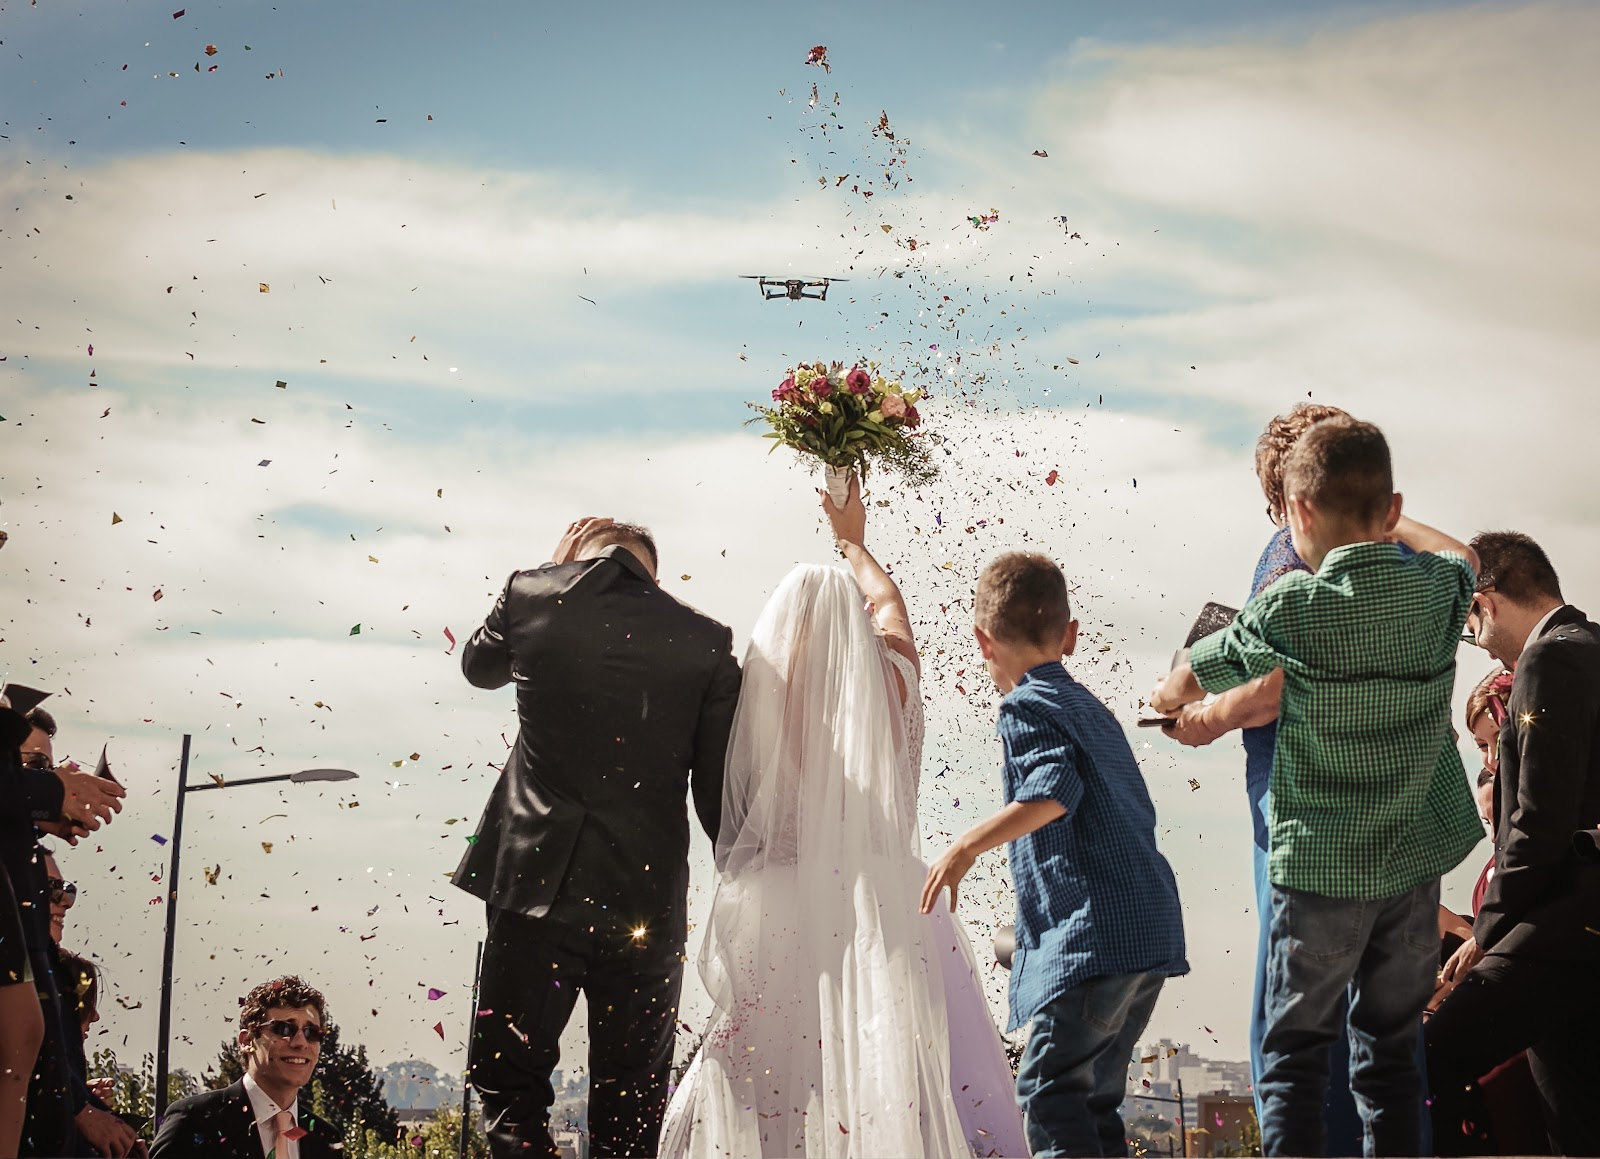 drone being used at a wedding